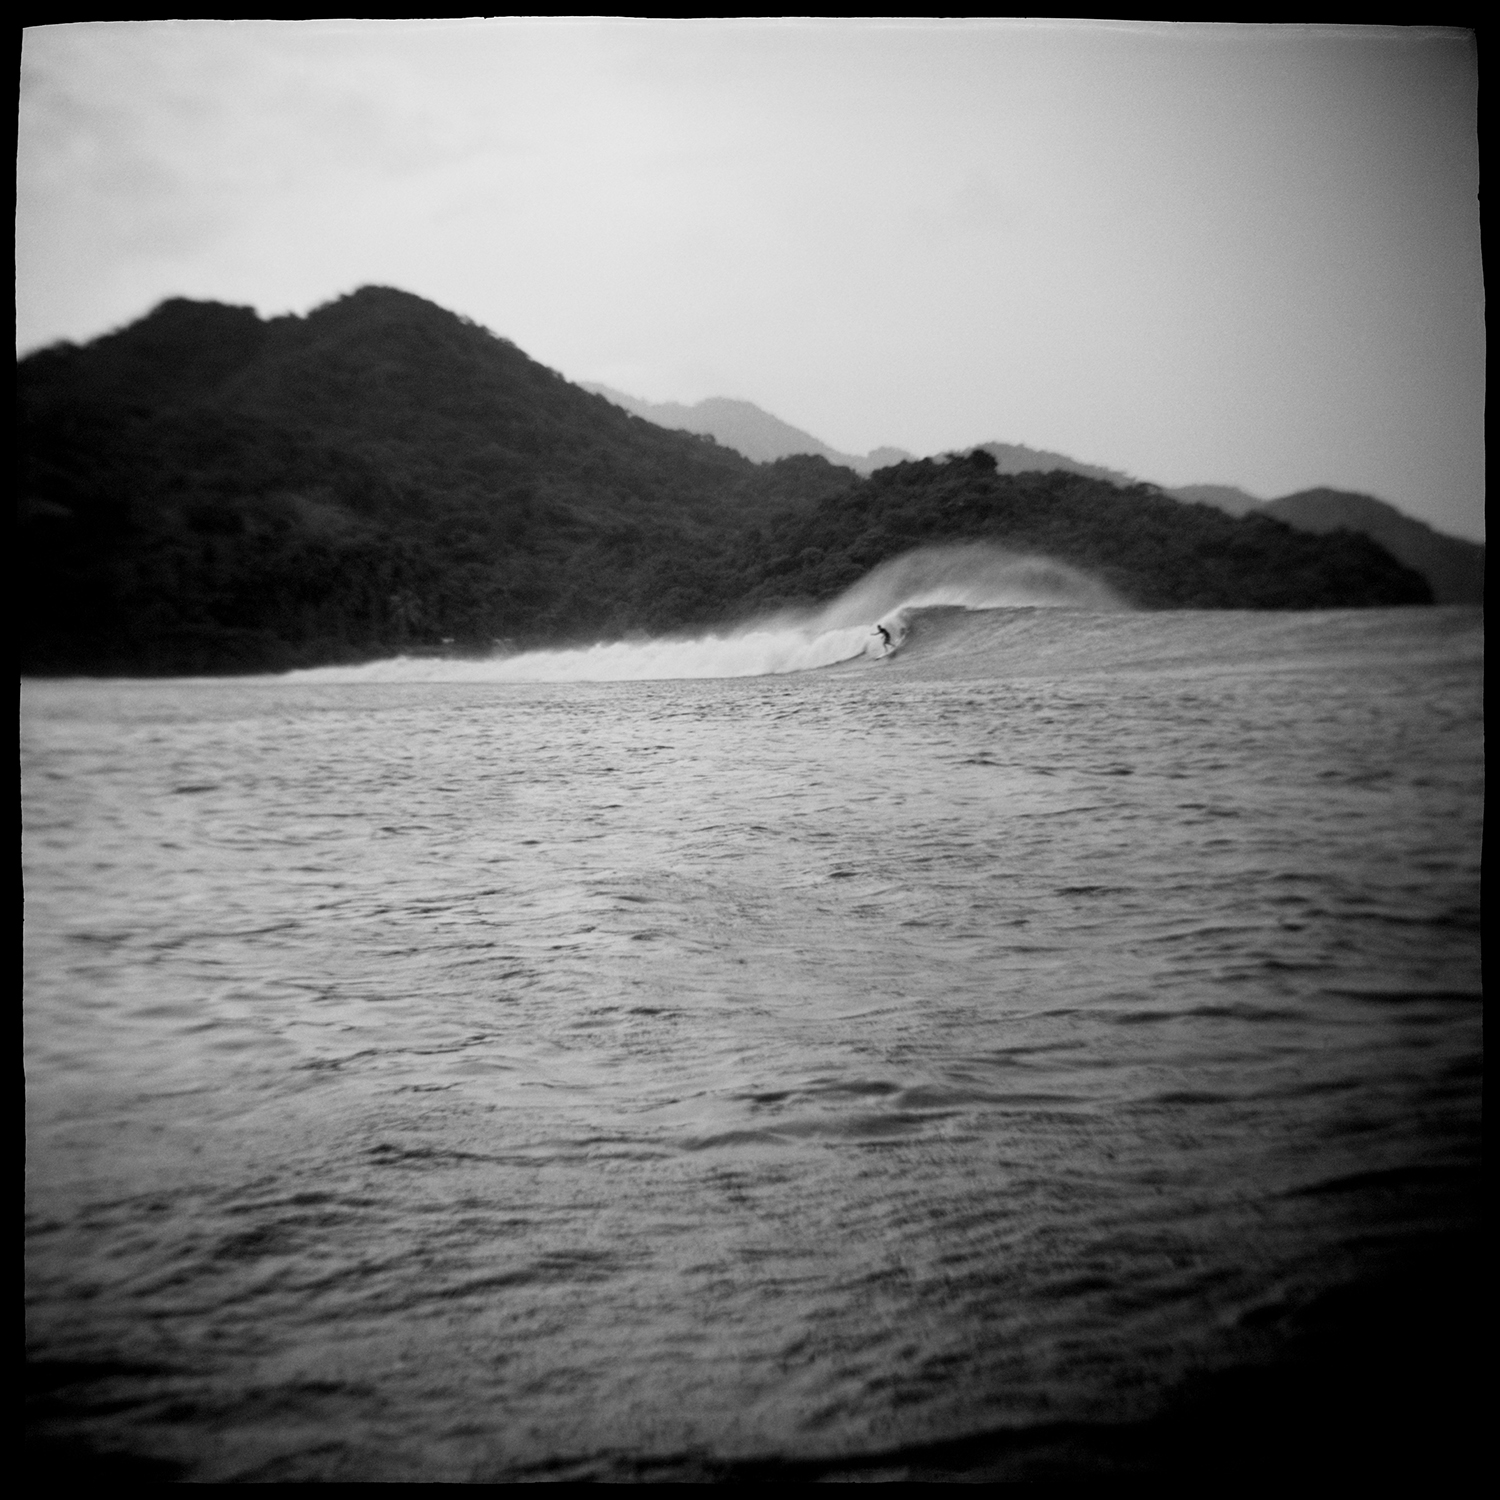 Offshores   Daniel Grant  6 x 6, Edition of 5, signed and numbered Archival inkjet print $100